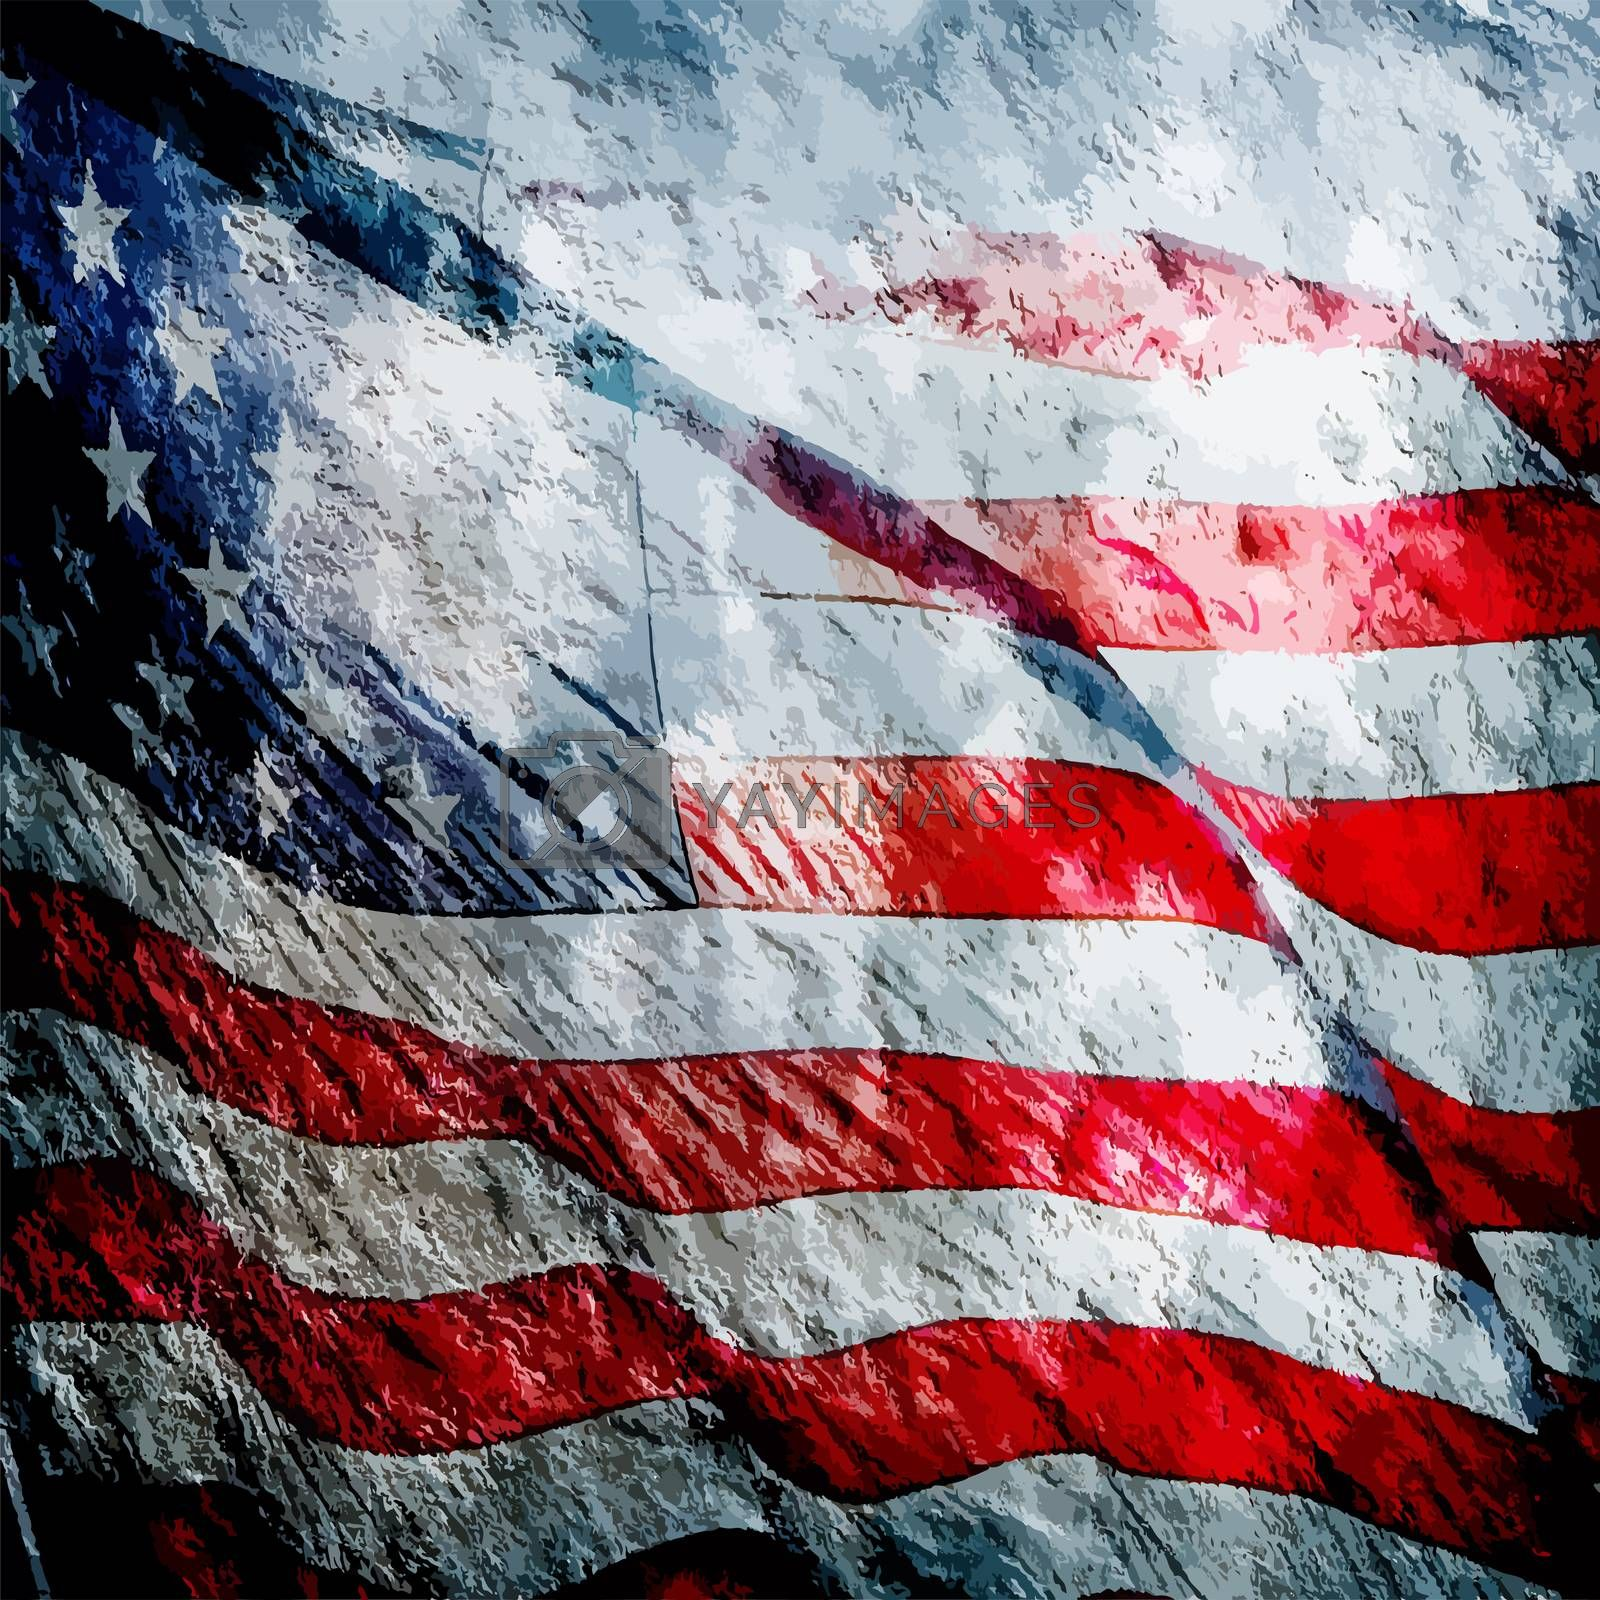 American flag grungy vintage textured background by PixAchi